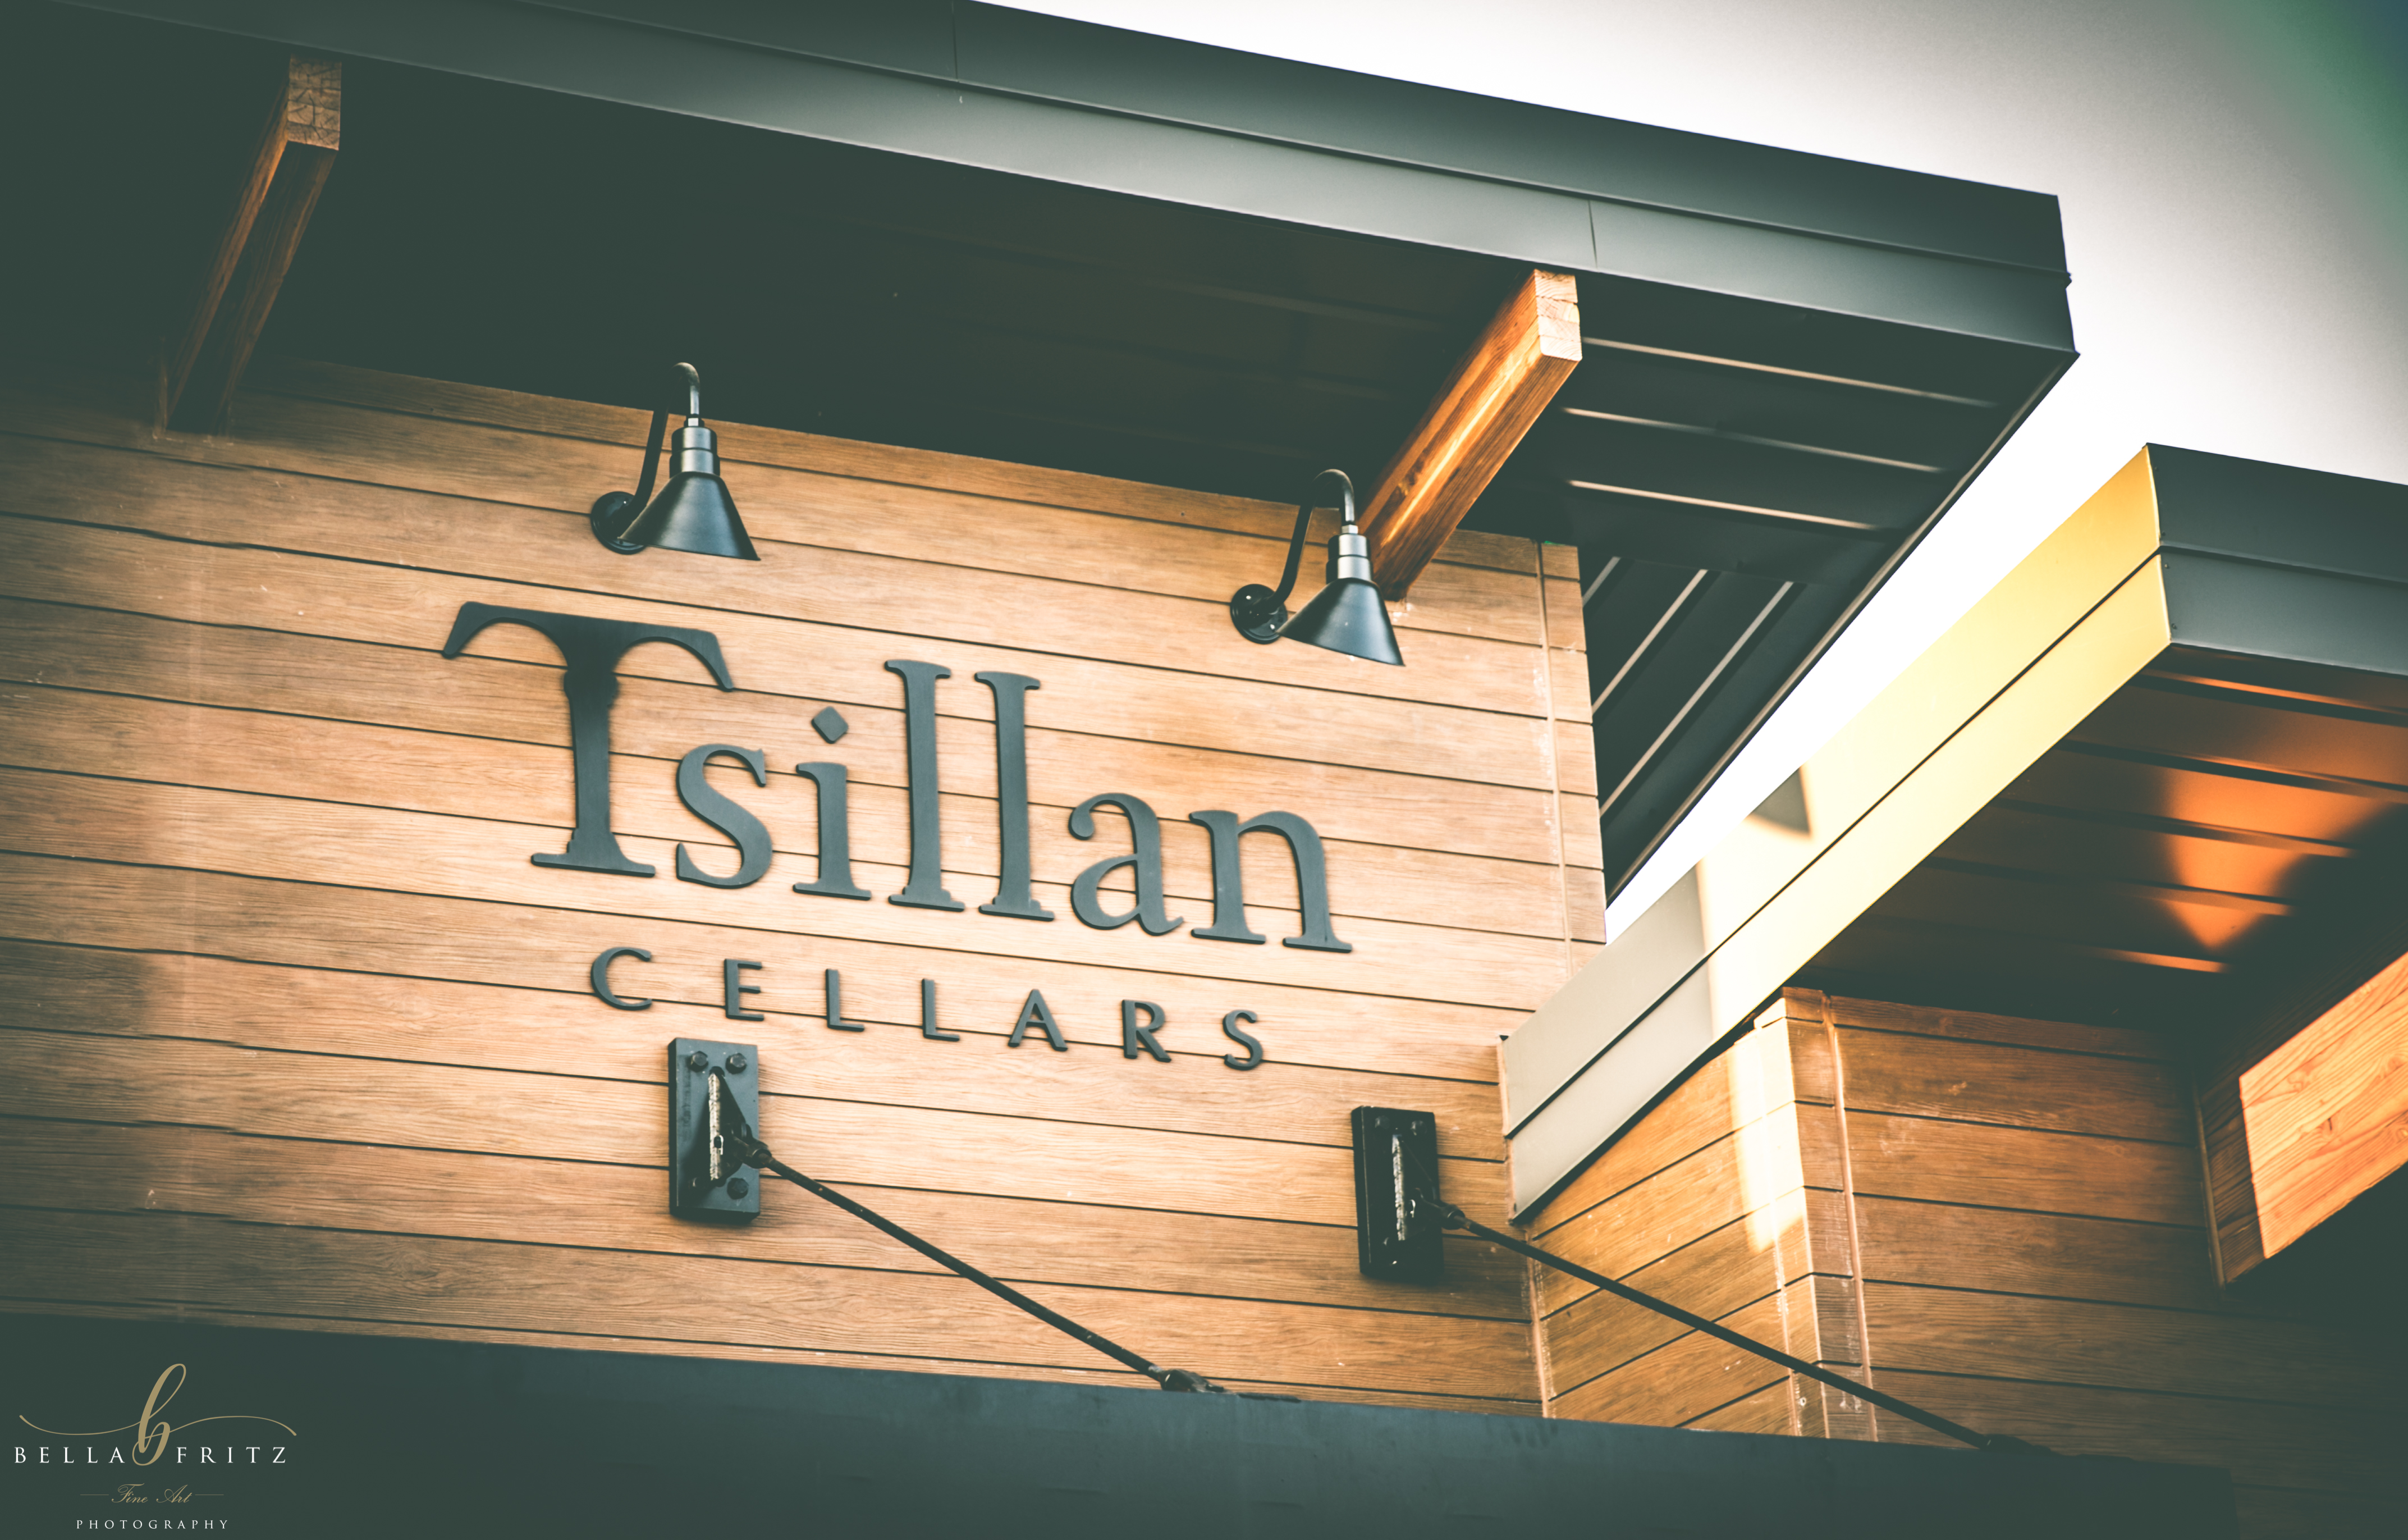 We invite you to visit our new Woodinville Tasting Room! Enjoy Tsillan Cellars wine and hospitality in the new Gateway Wine Tasting District of Woodinville ... & Woodinville Tasting Room u2013 Tsillan Cellars